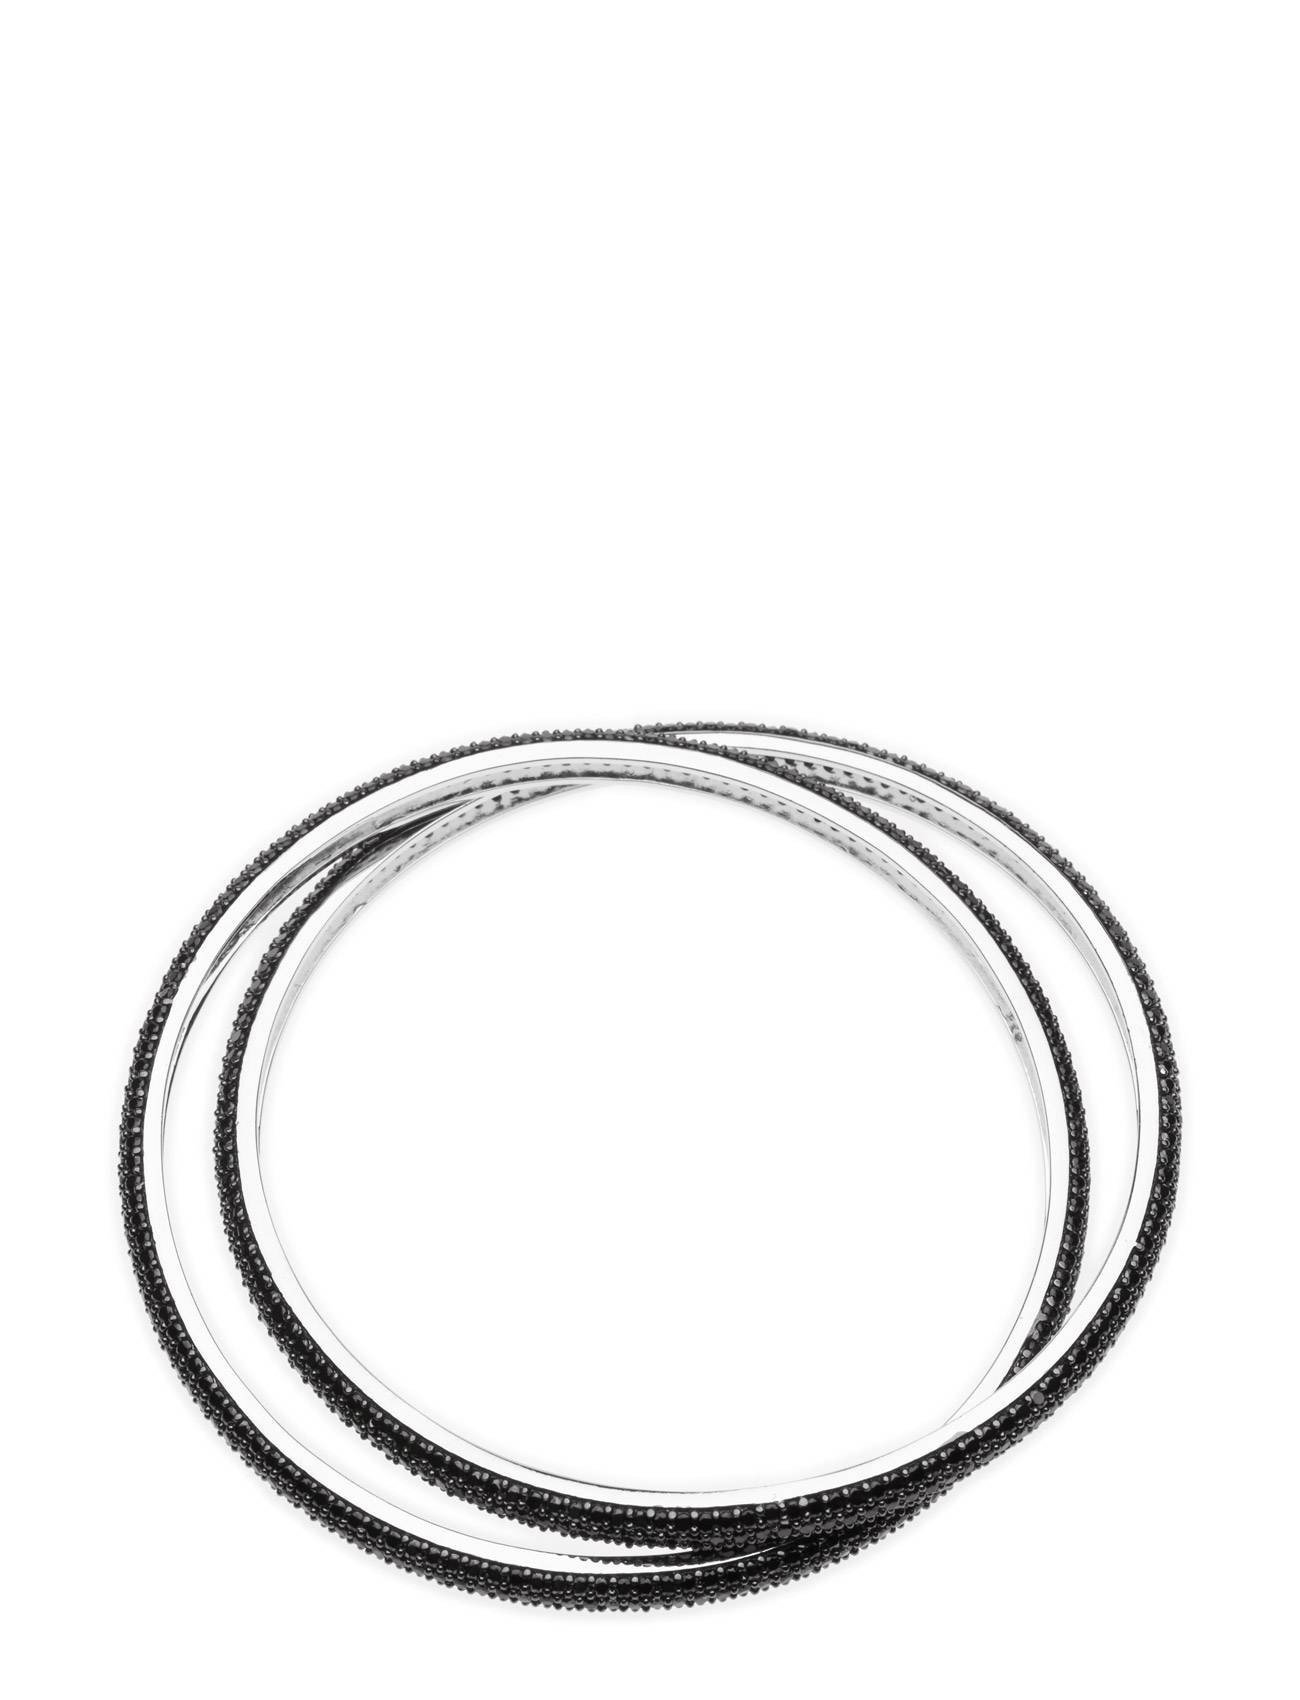 Sif Jakobs Jewellery Catania Bangle